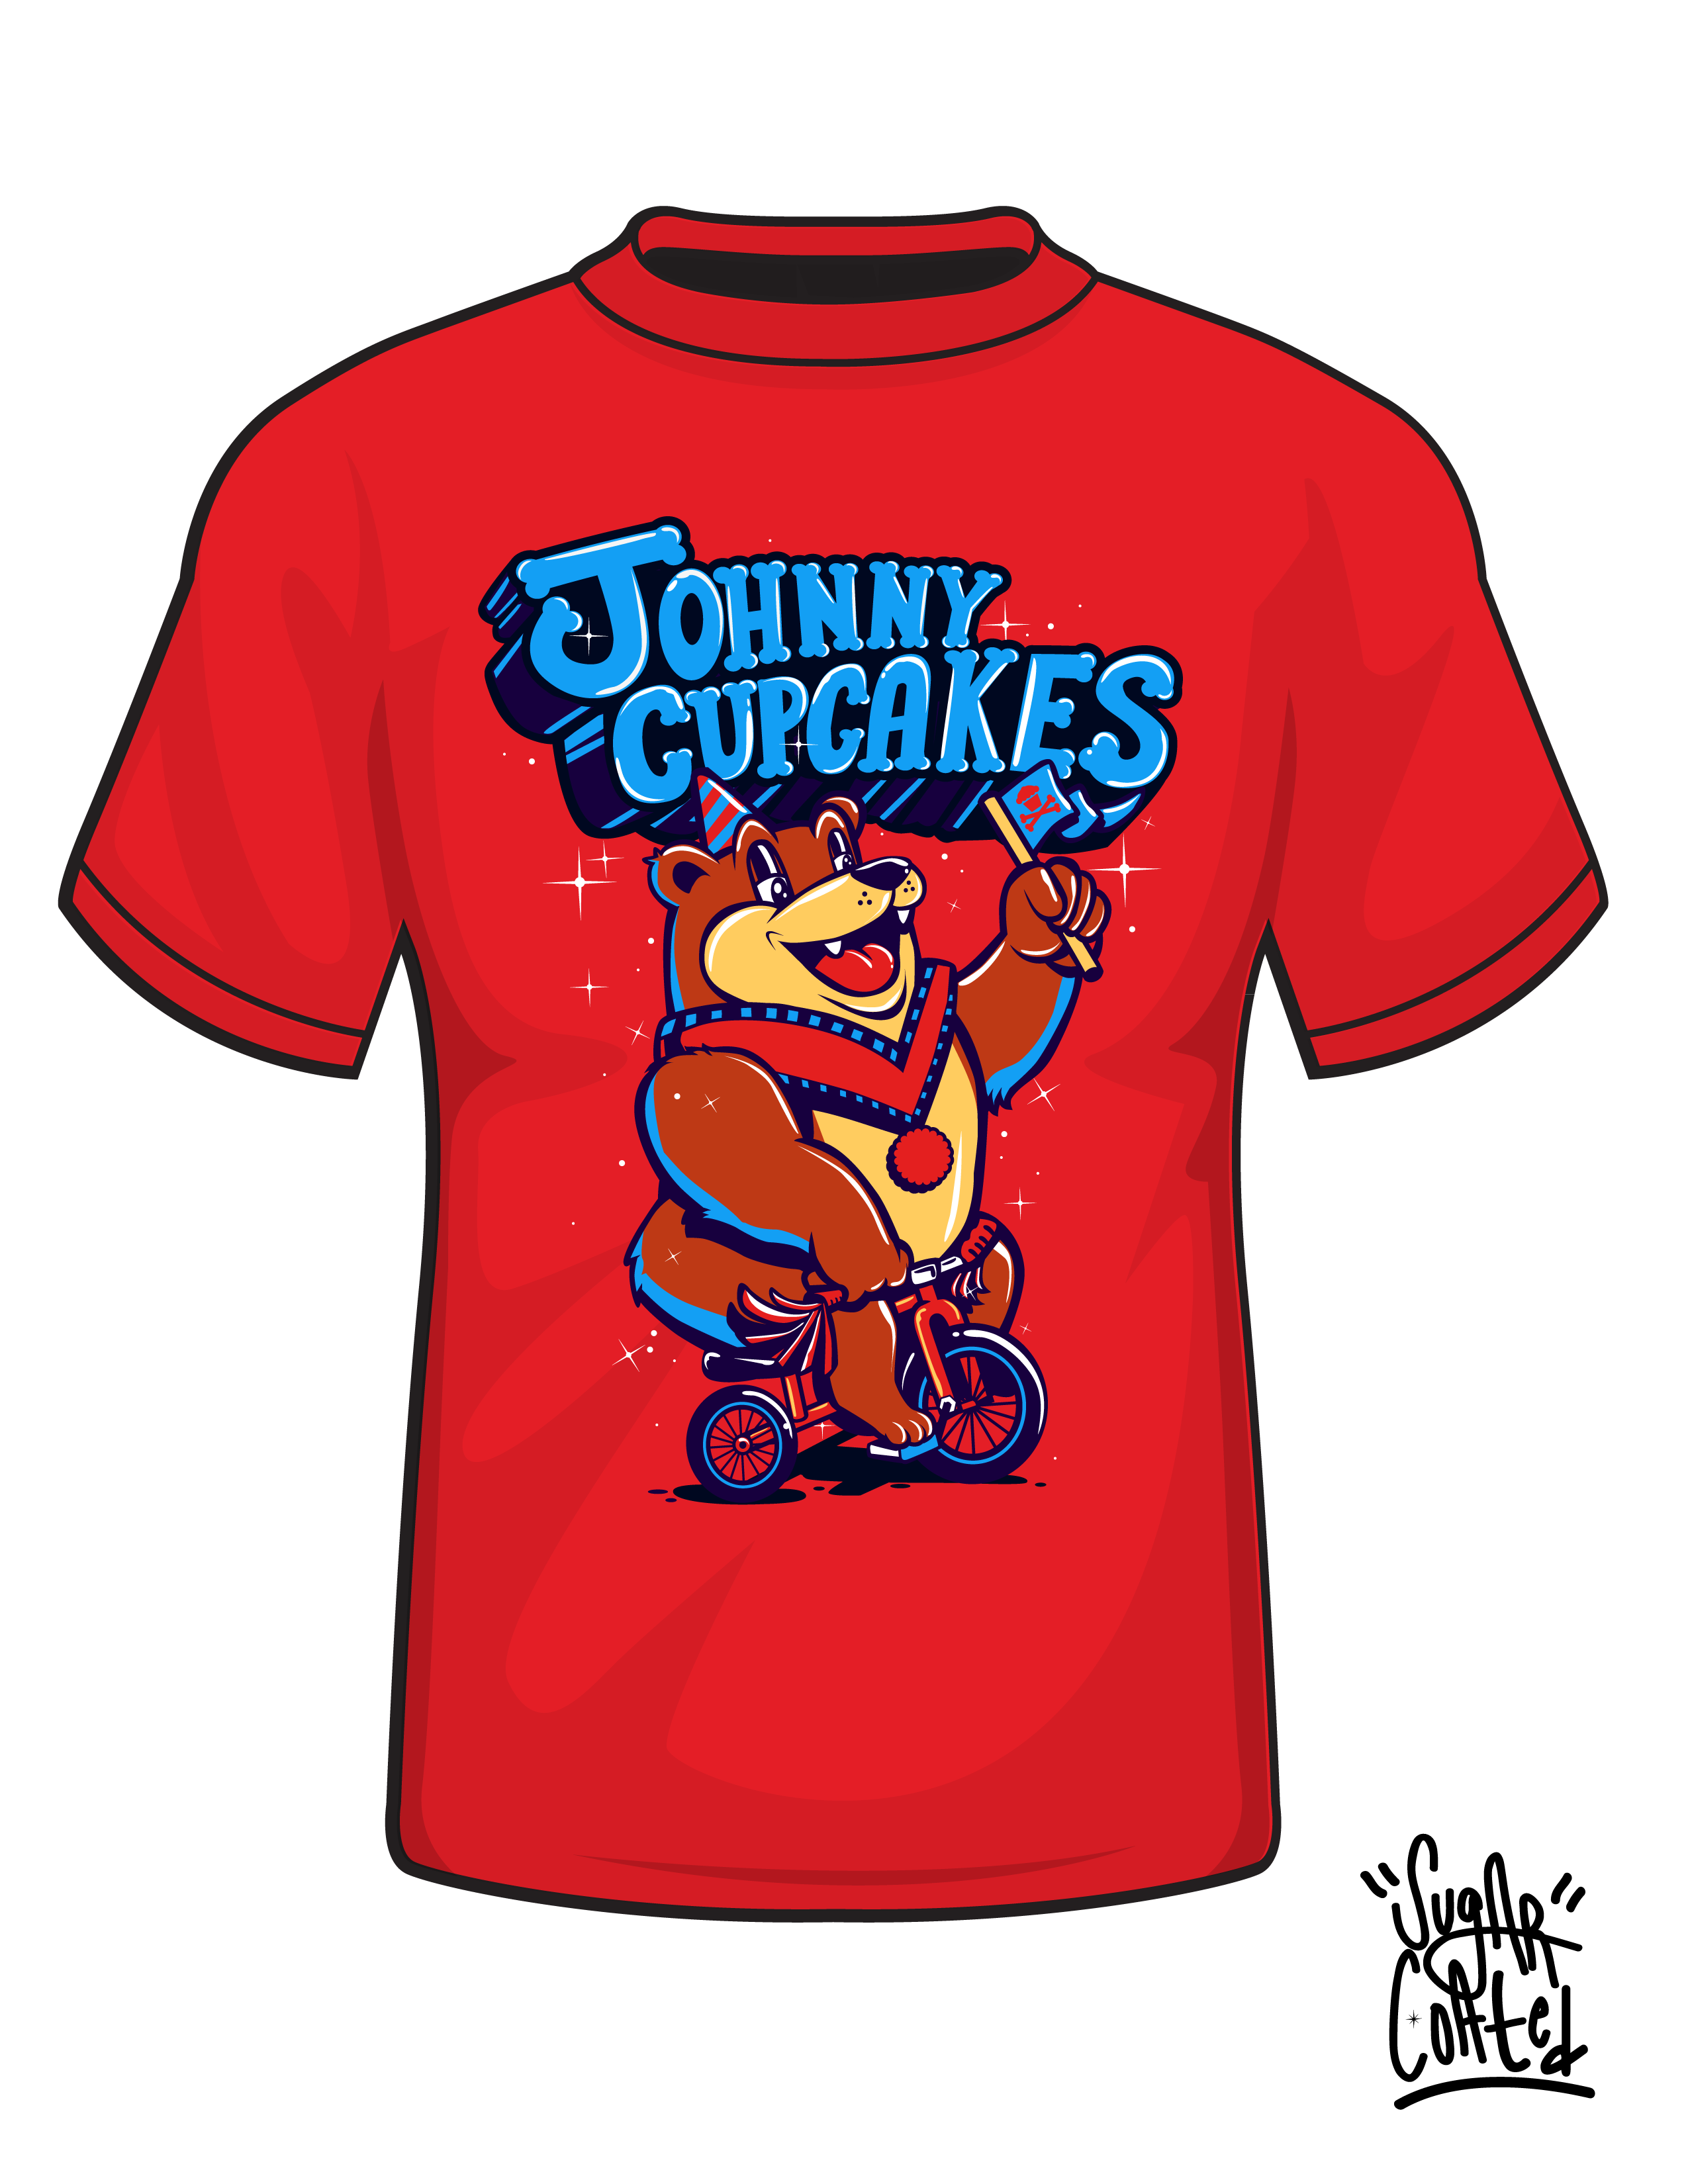 Sugar Coated x Johnny Cupcakes  - image 5 - student project